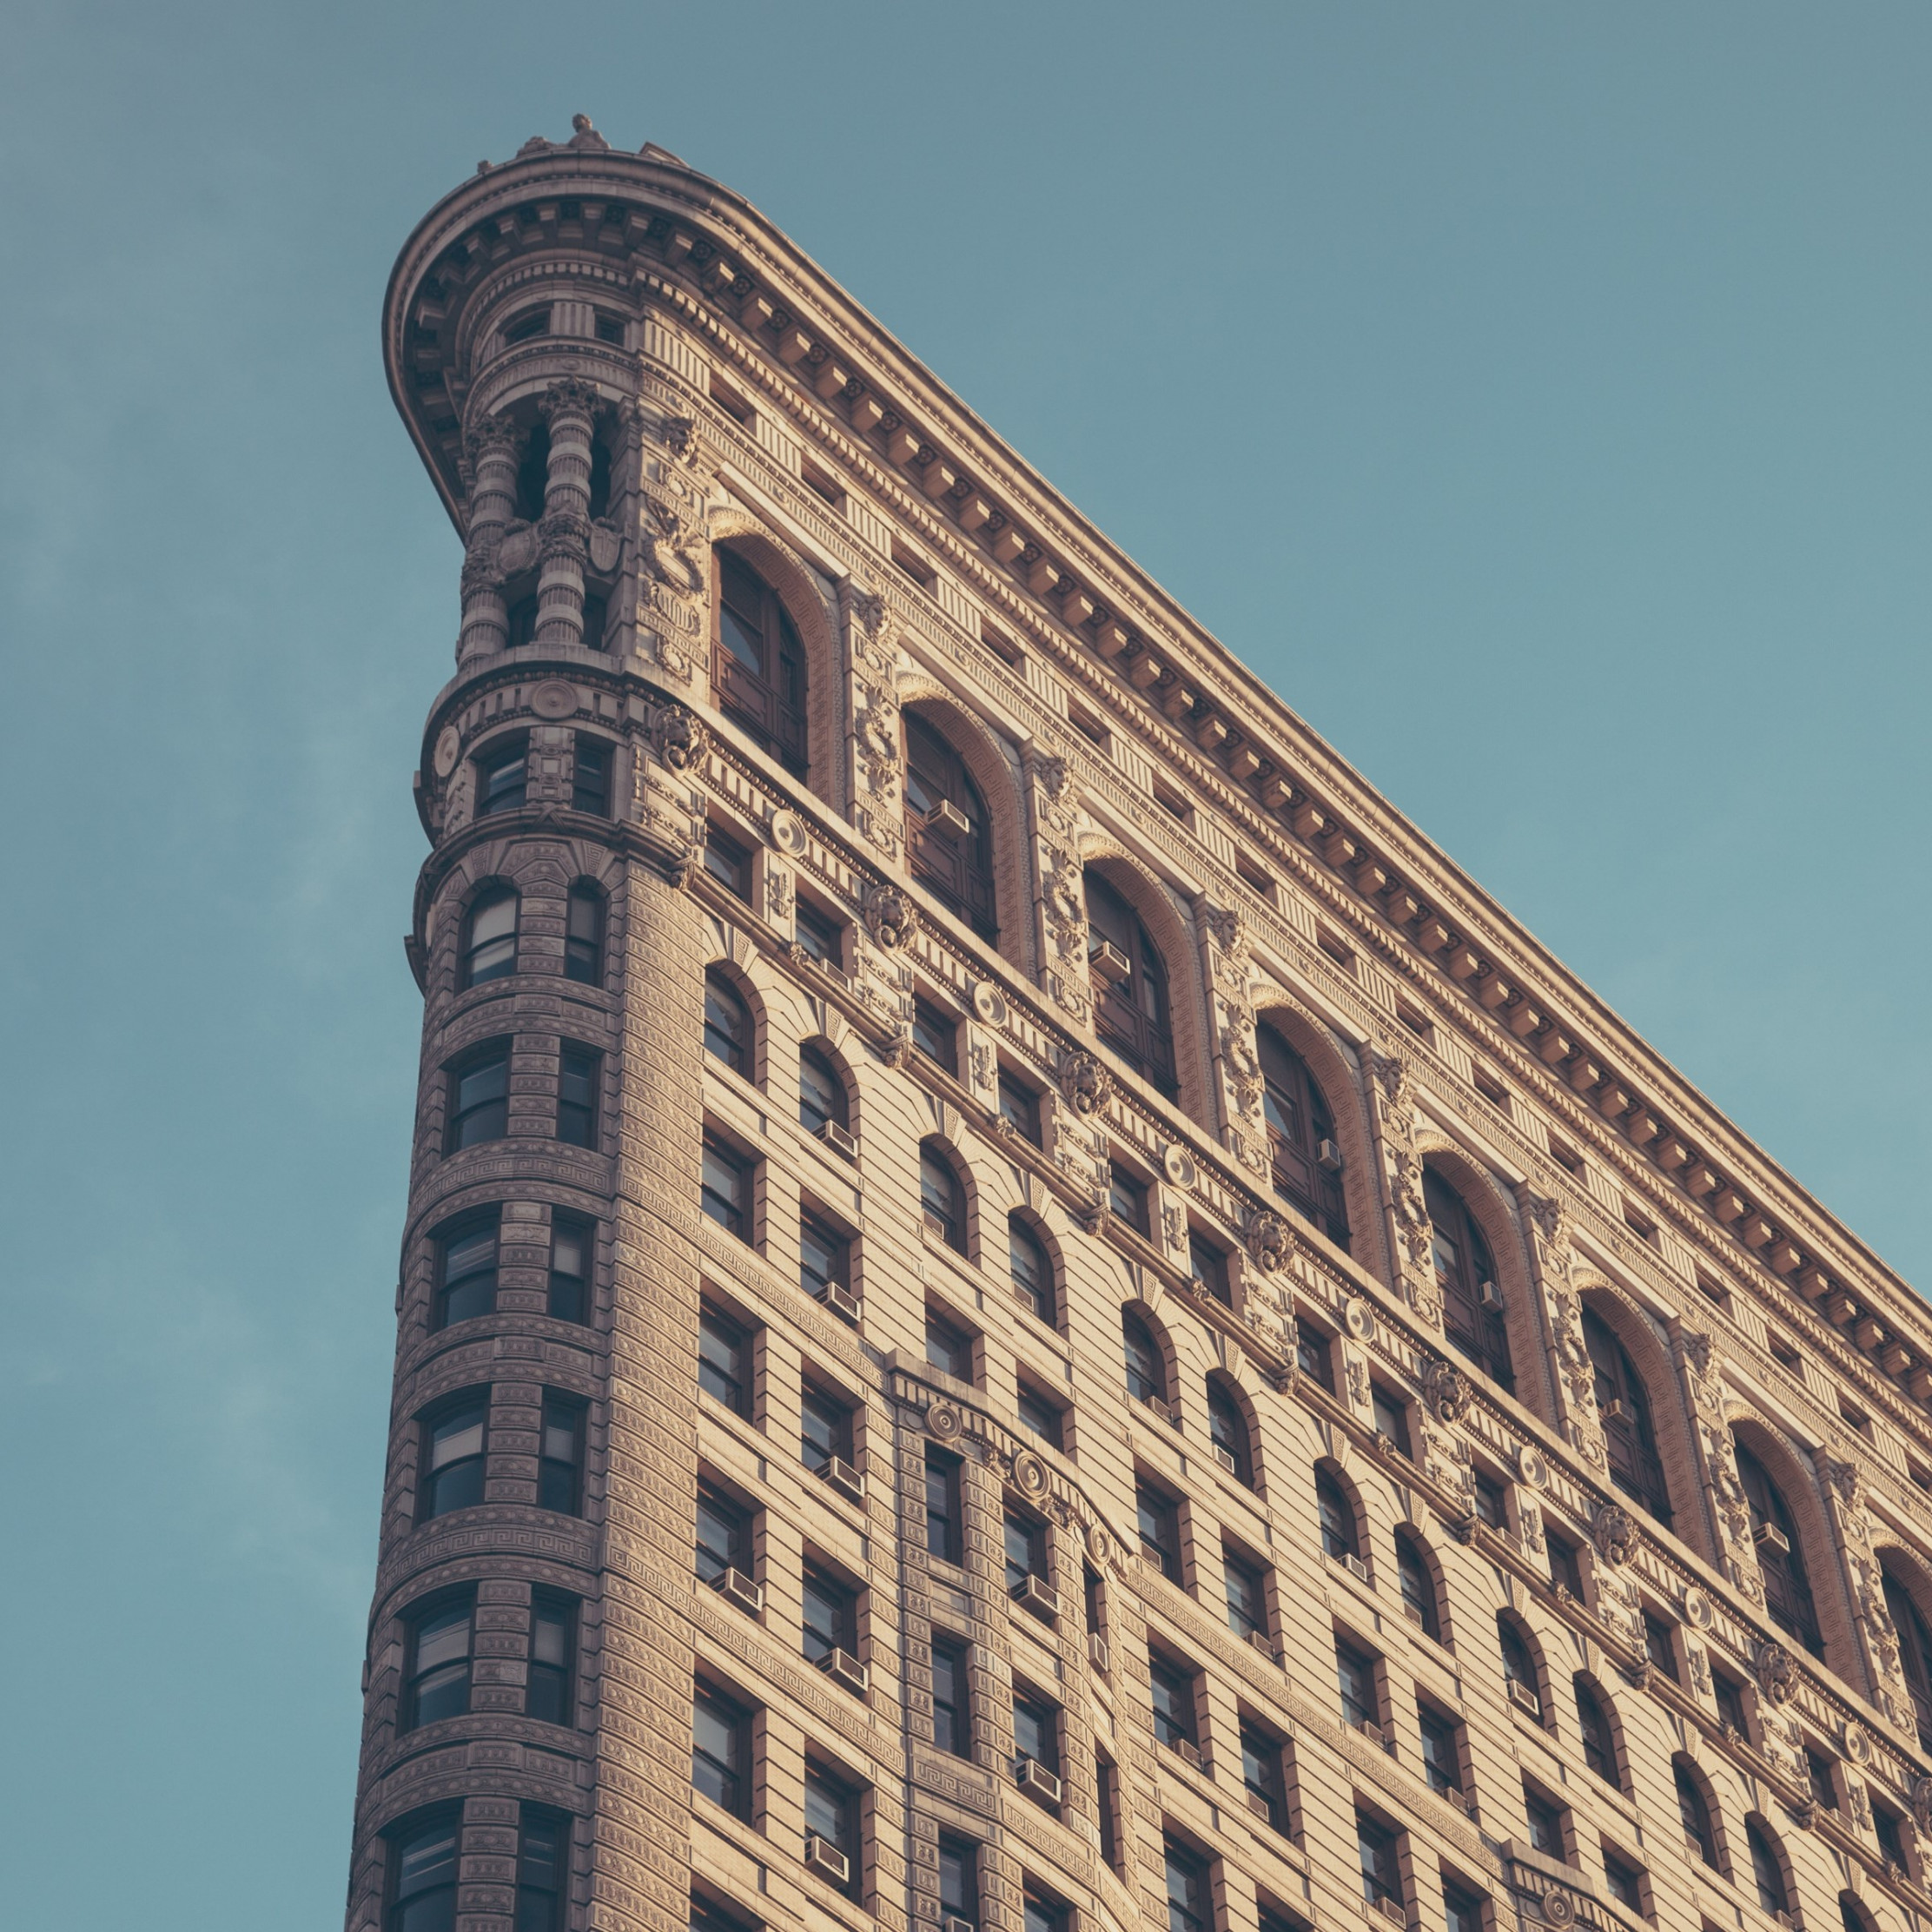 Flatiron building in New York wallpaper 2224x2224